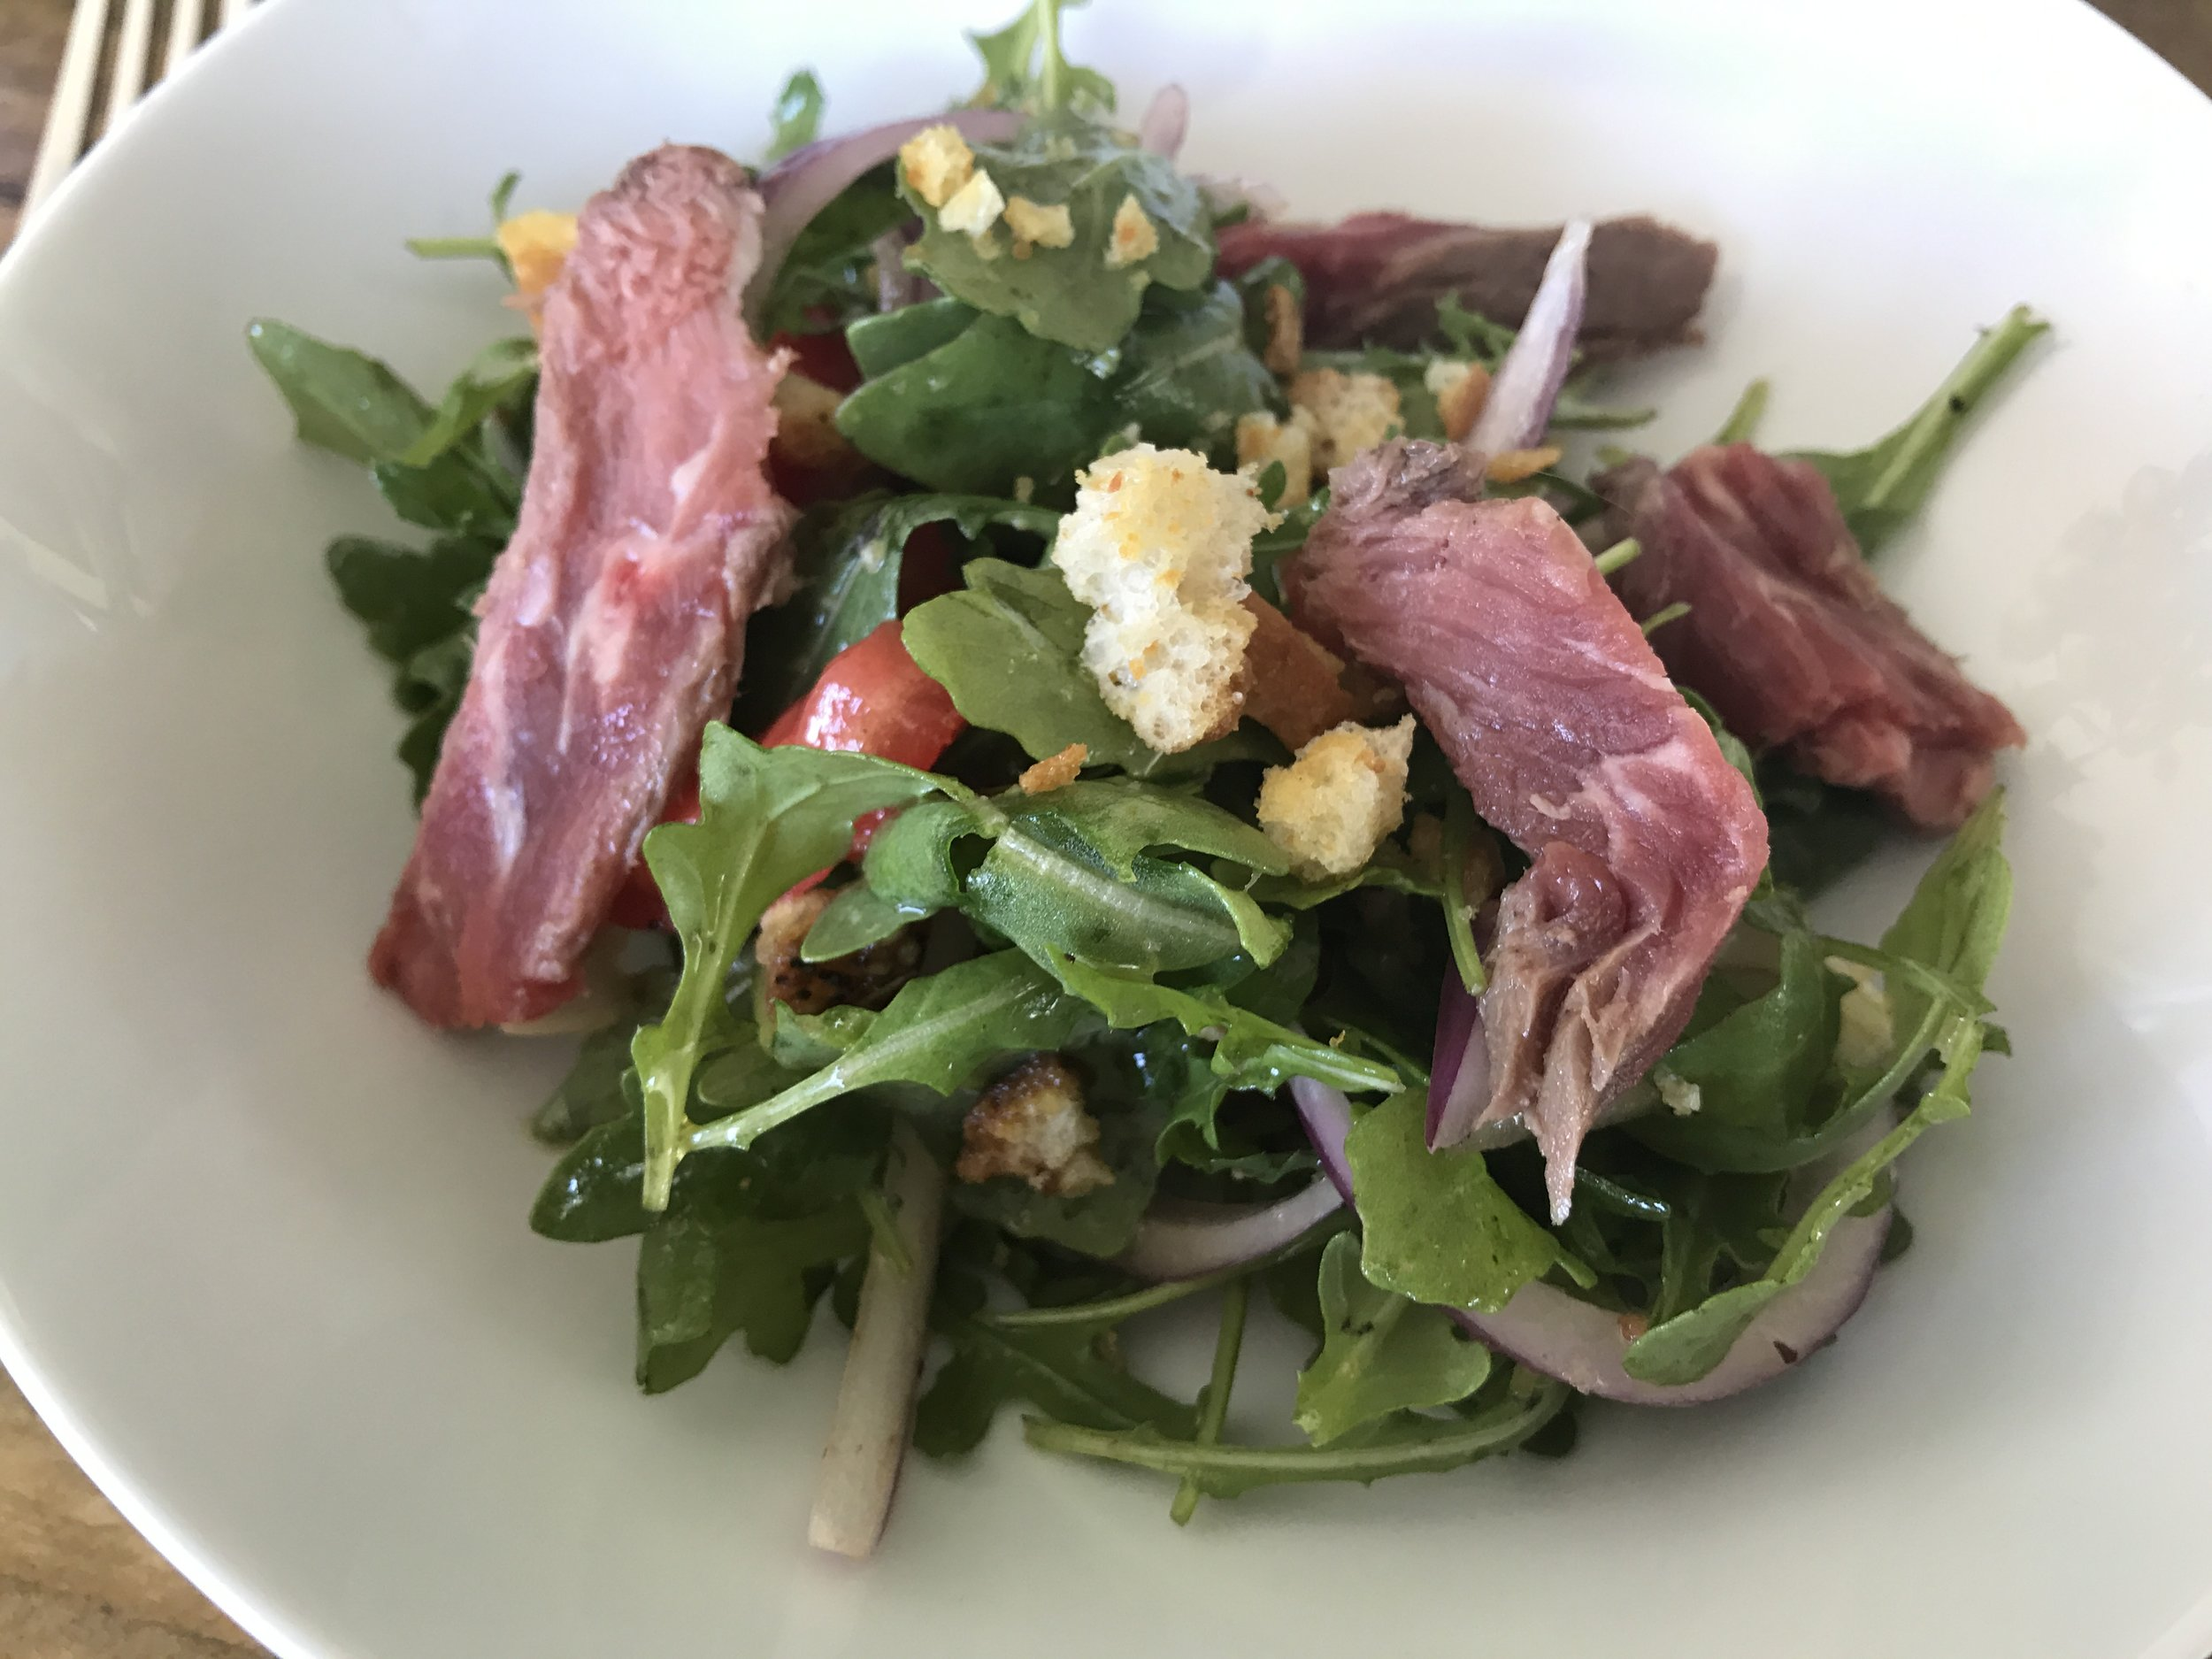 I love being able to use a cut of meat for several meals as opposed to just buying some for one! This is a cold beef salad my husband whipped up with the left over steak from Friday night! Wonderful lunch for us!